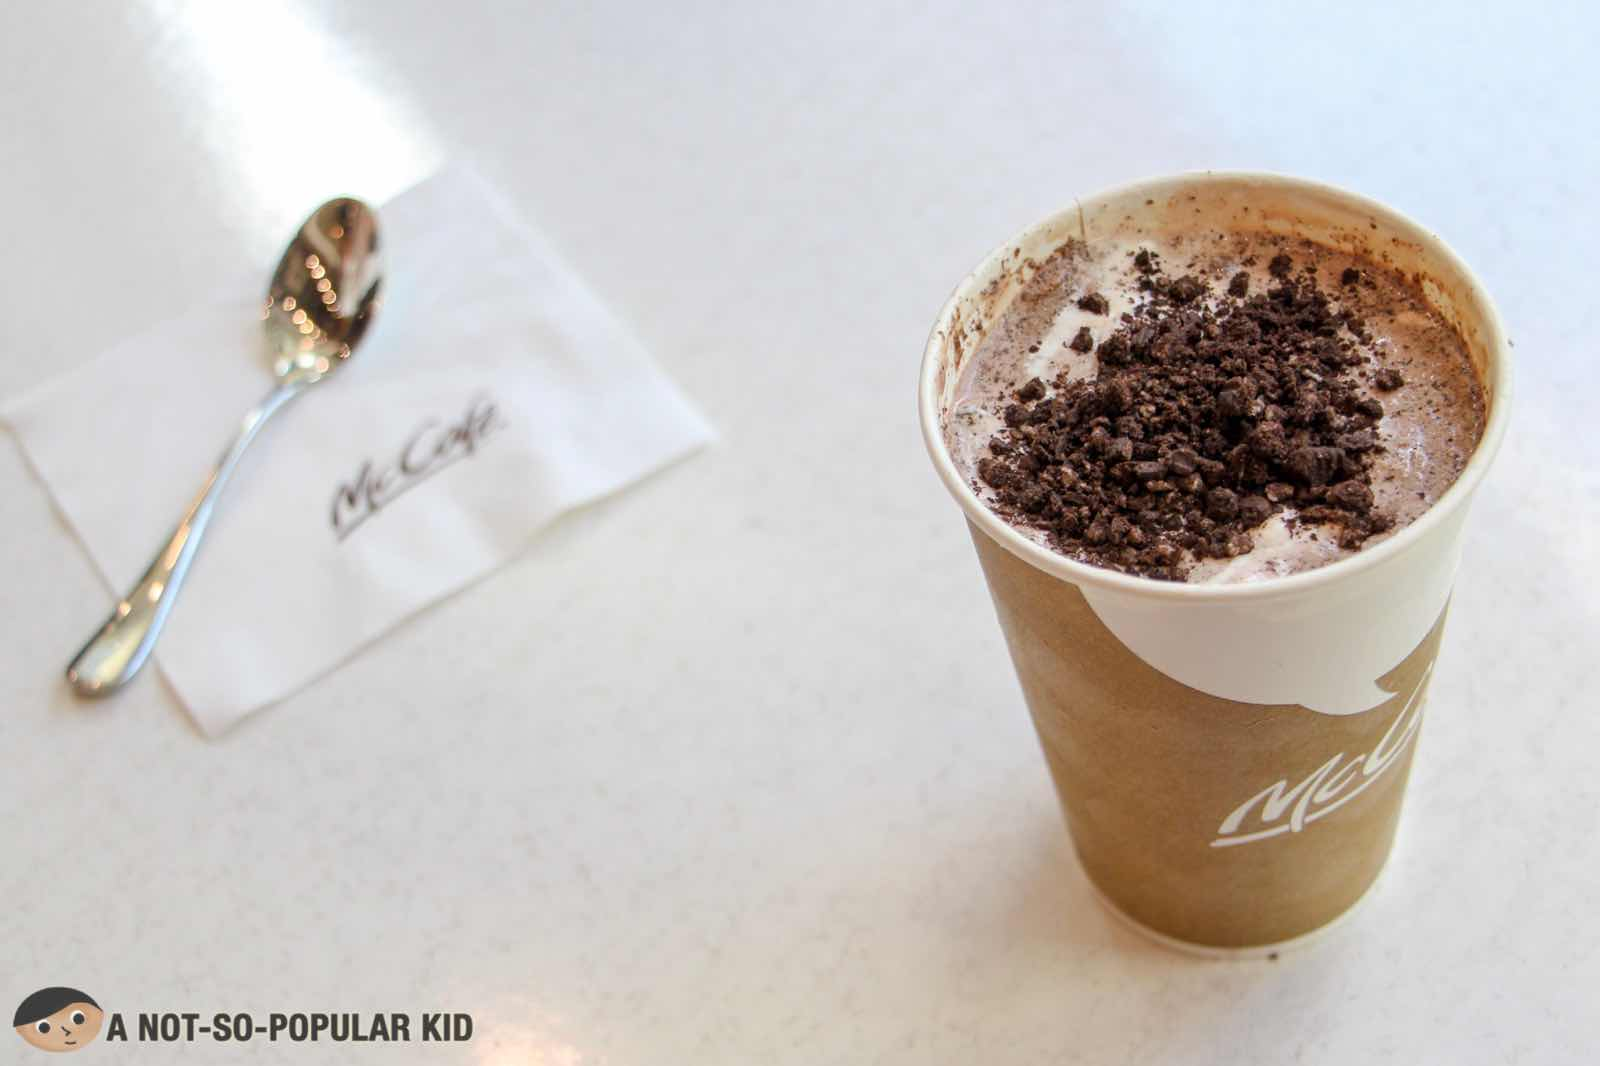 Oreo Frappe of McCafe in Maybank Theater